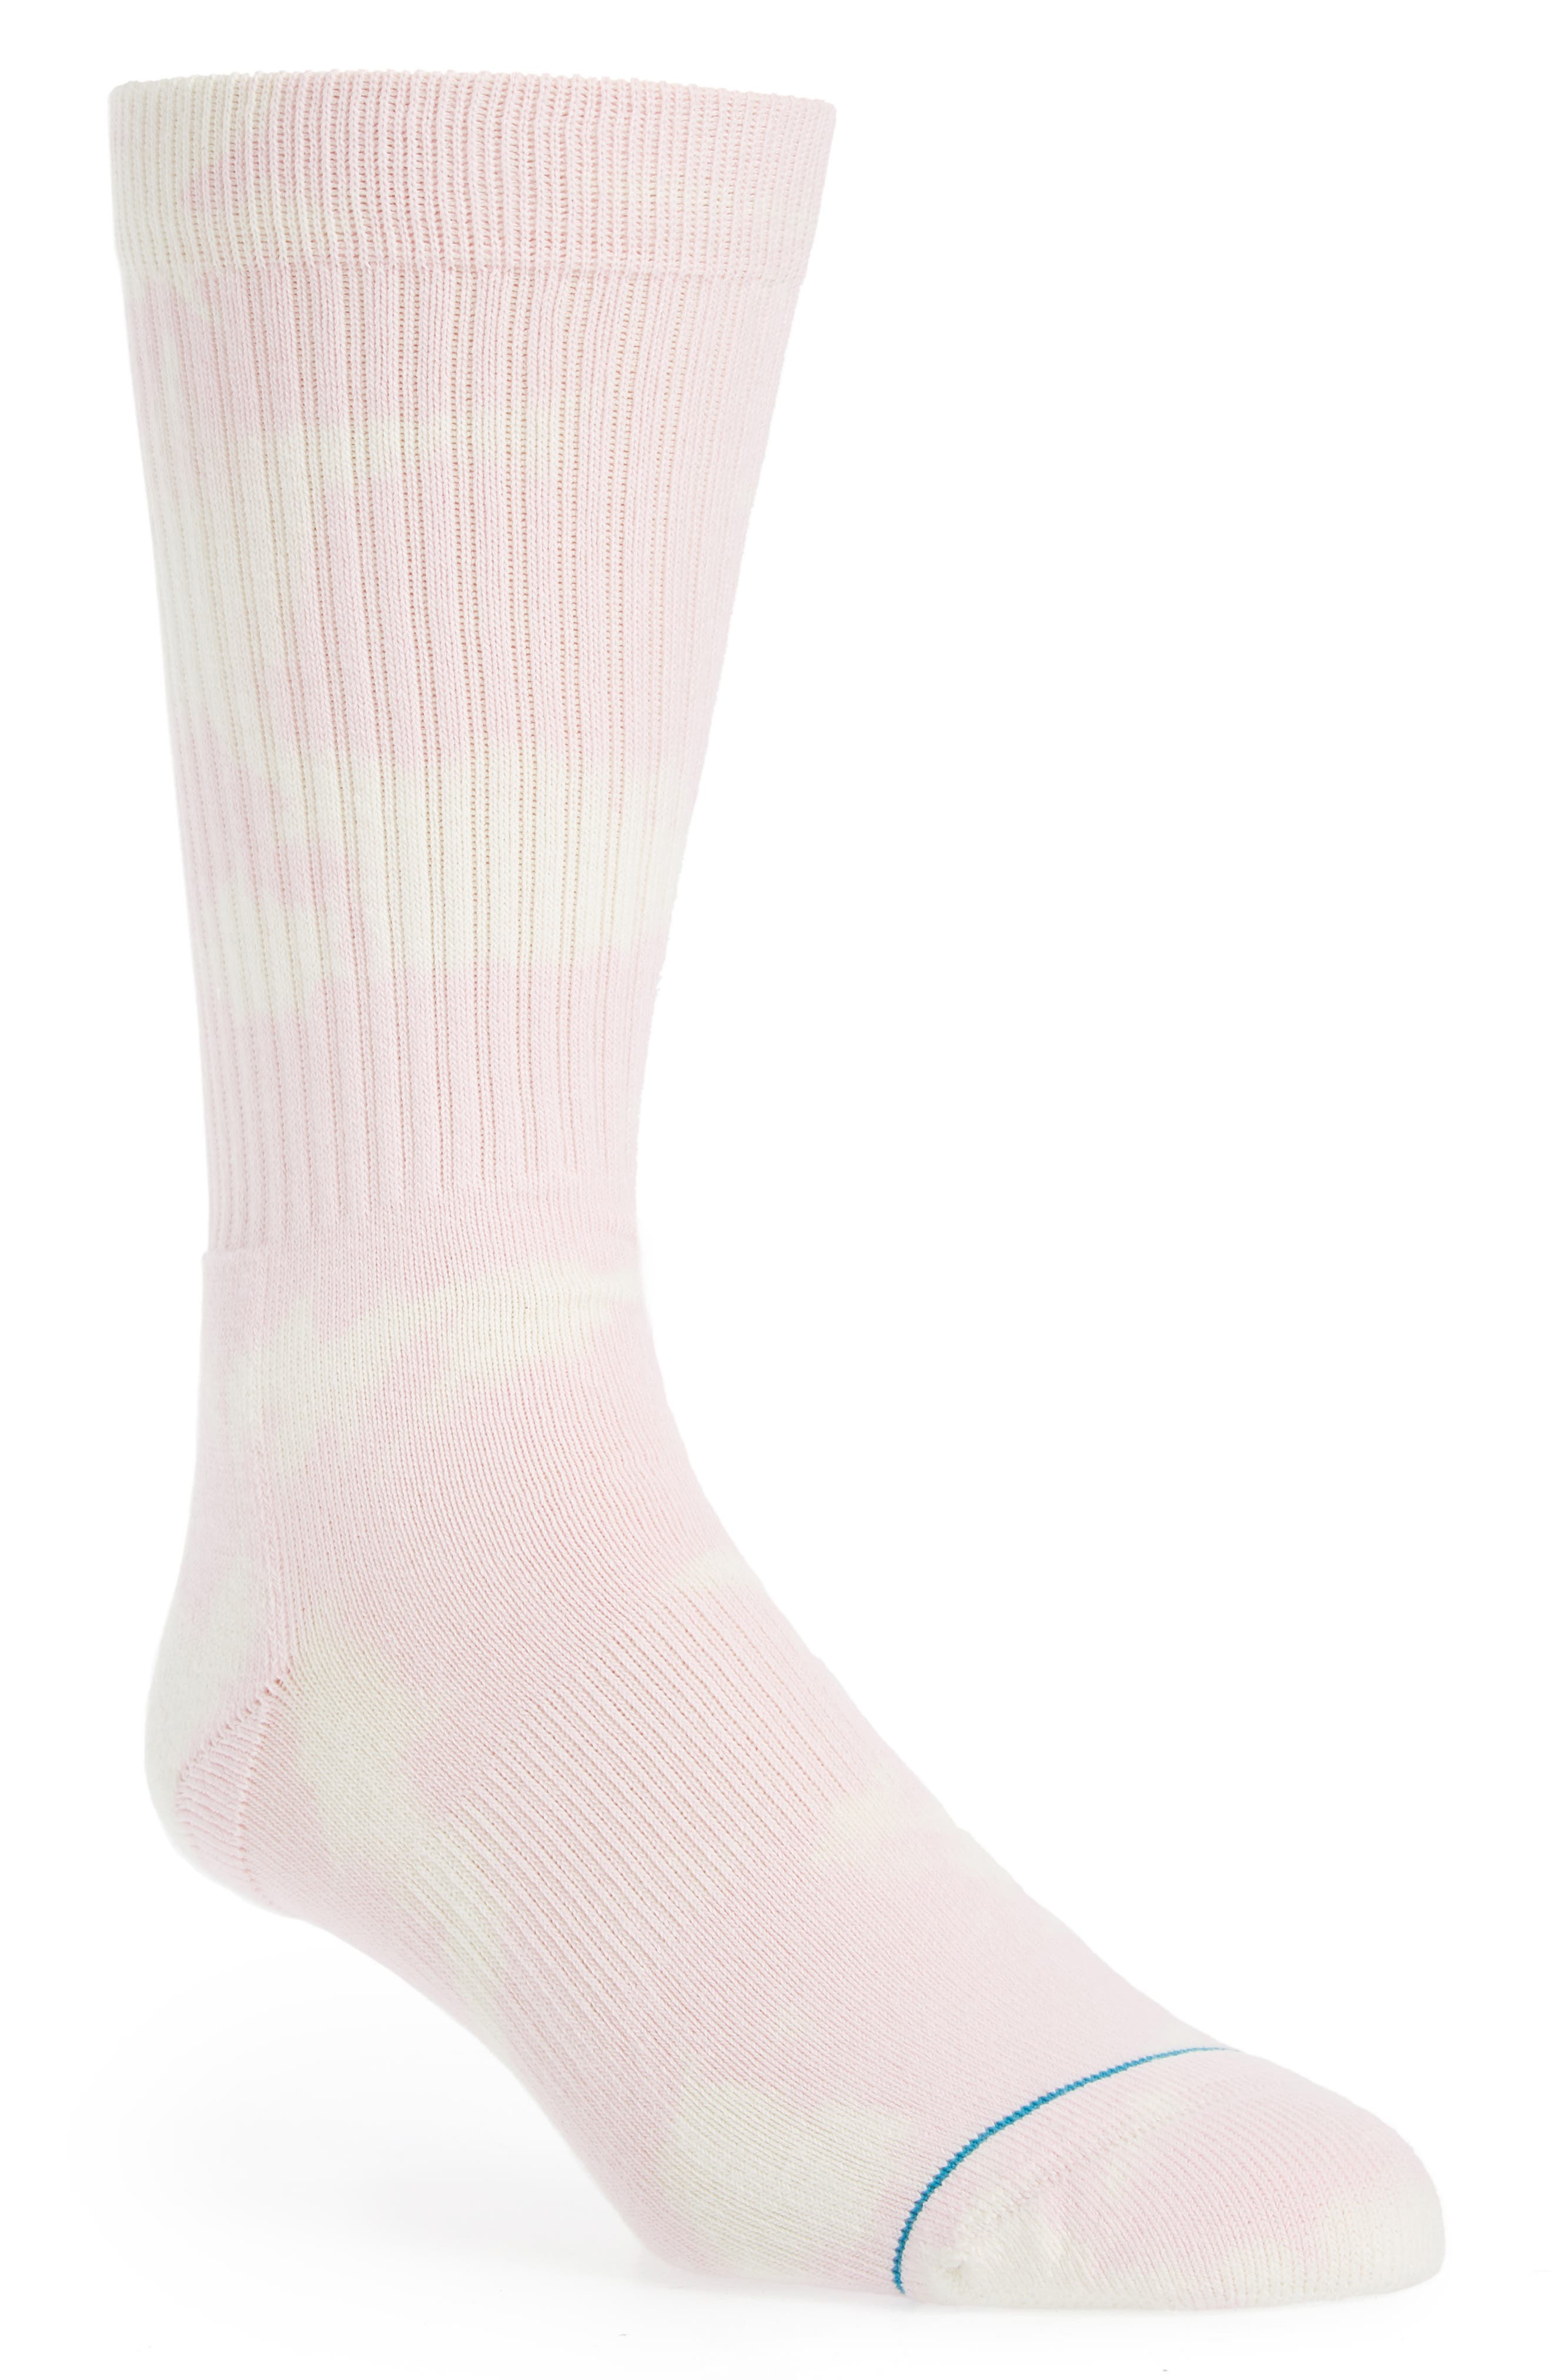 Russell Crew Socks,                         Main,                         color, PINK